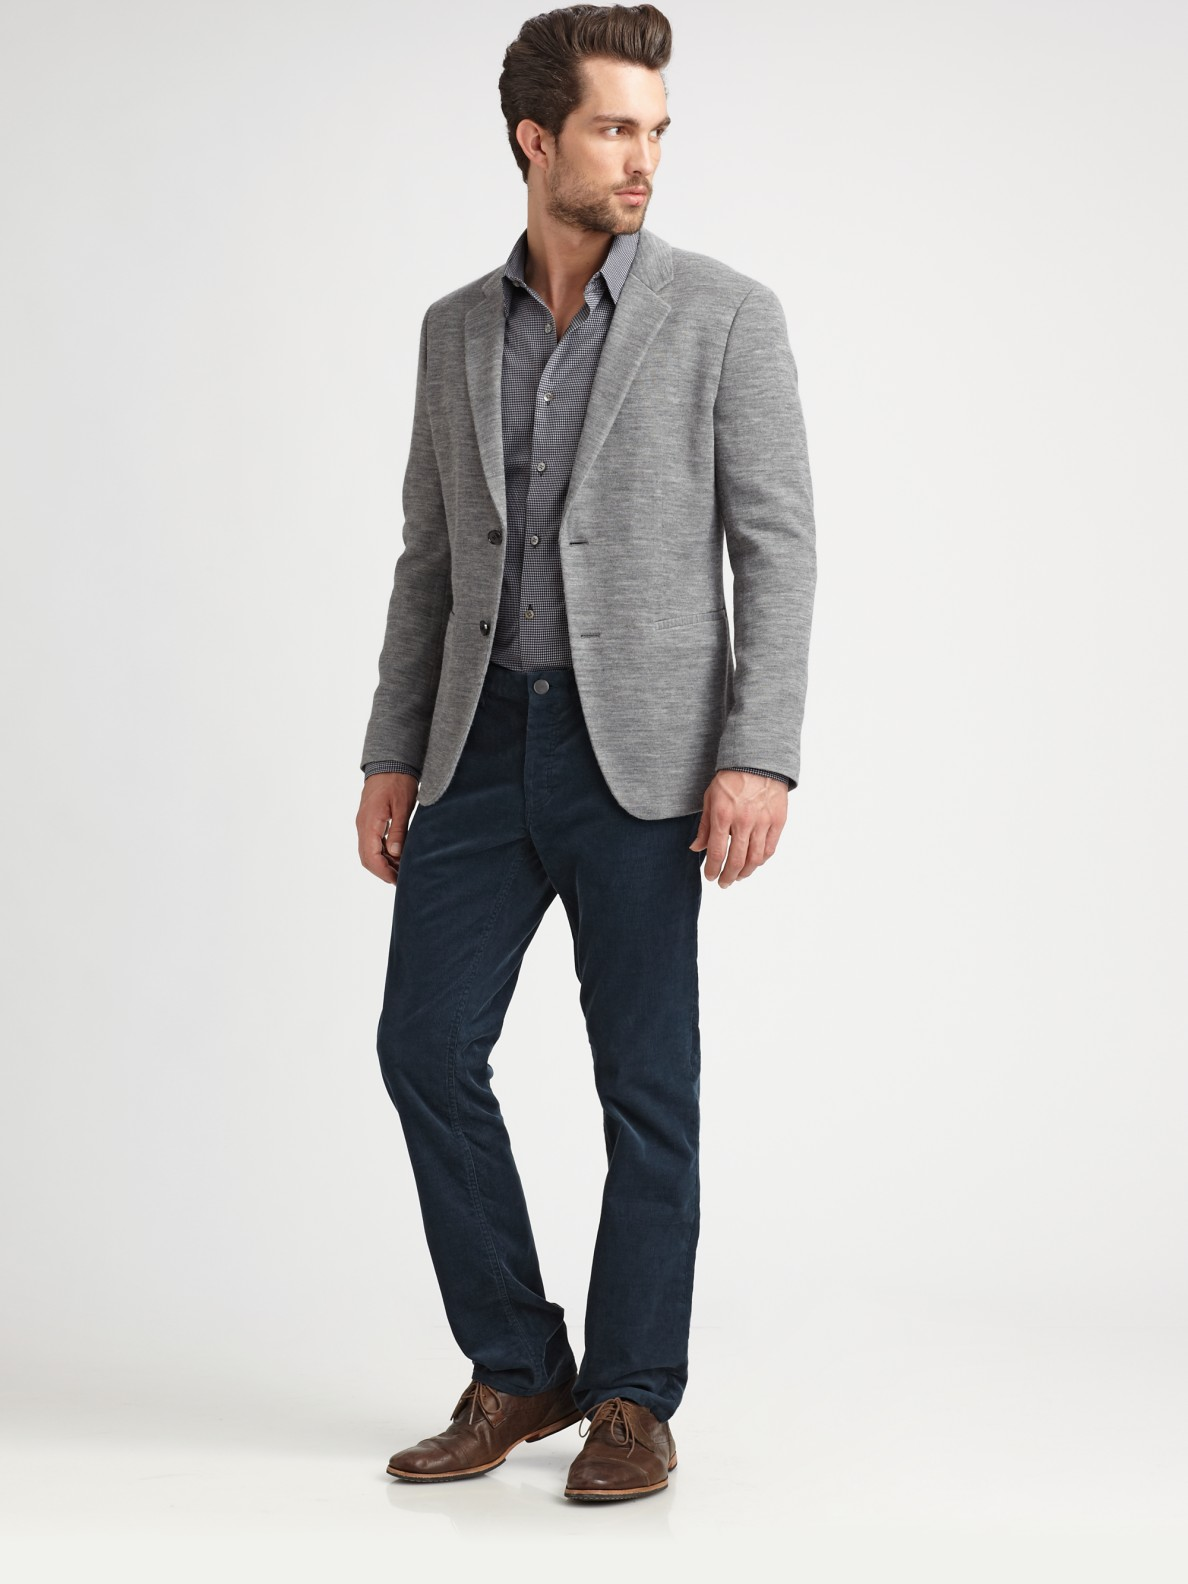 Mens Grey Sports Jacket | Jackets Review